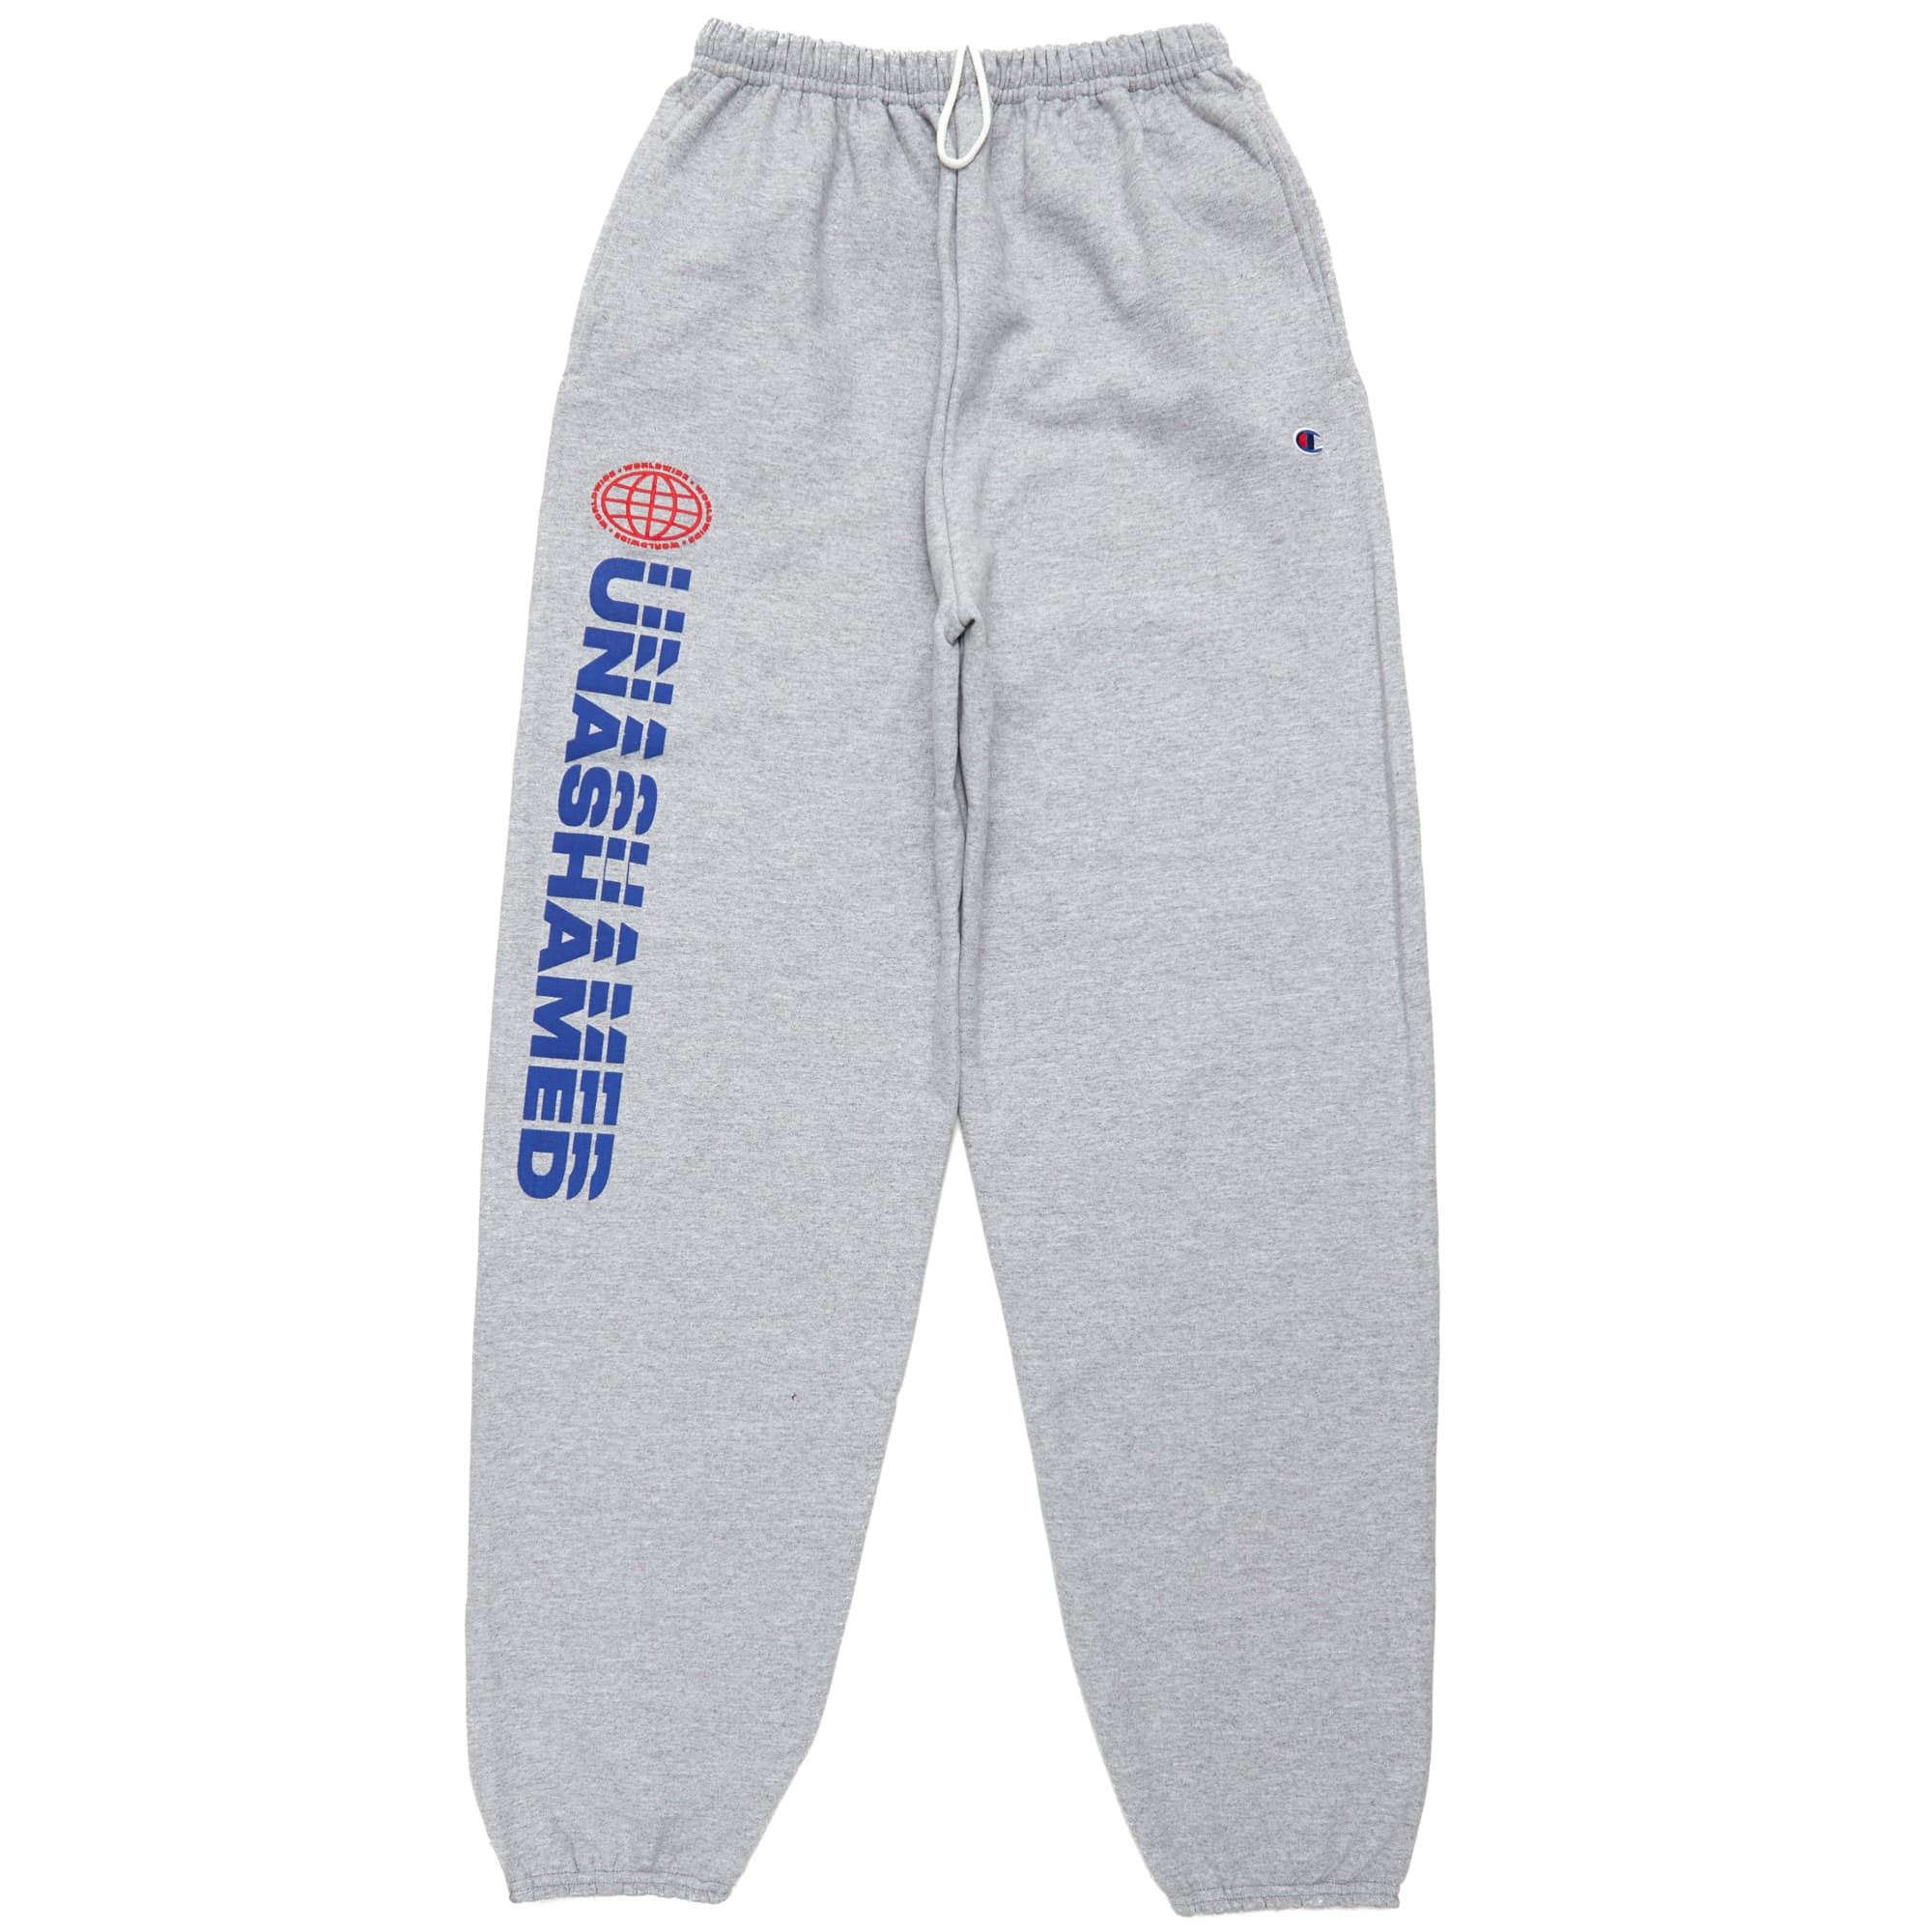 'Unashamed Worldwide' Champion Sweatpants